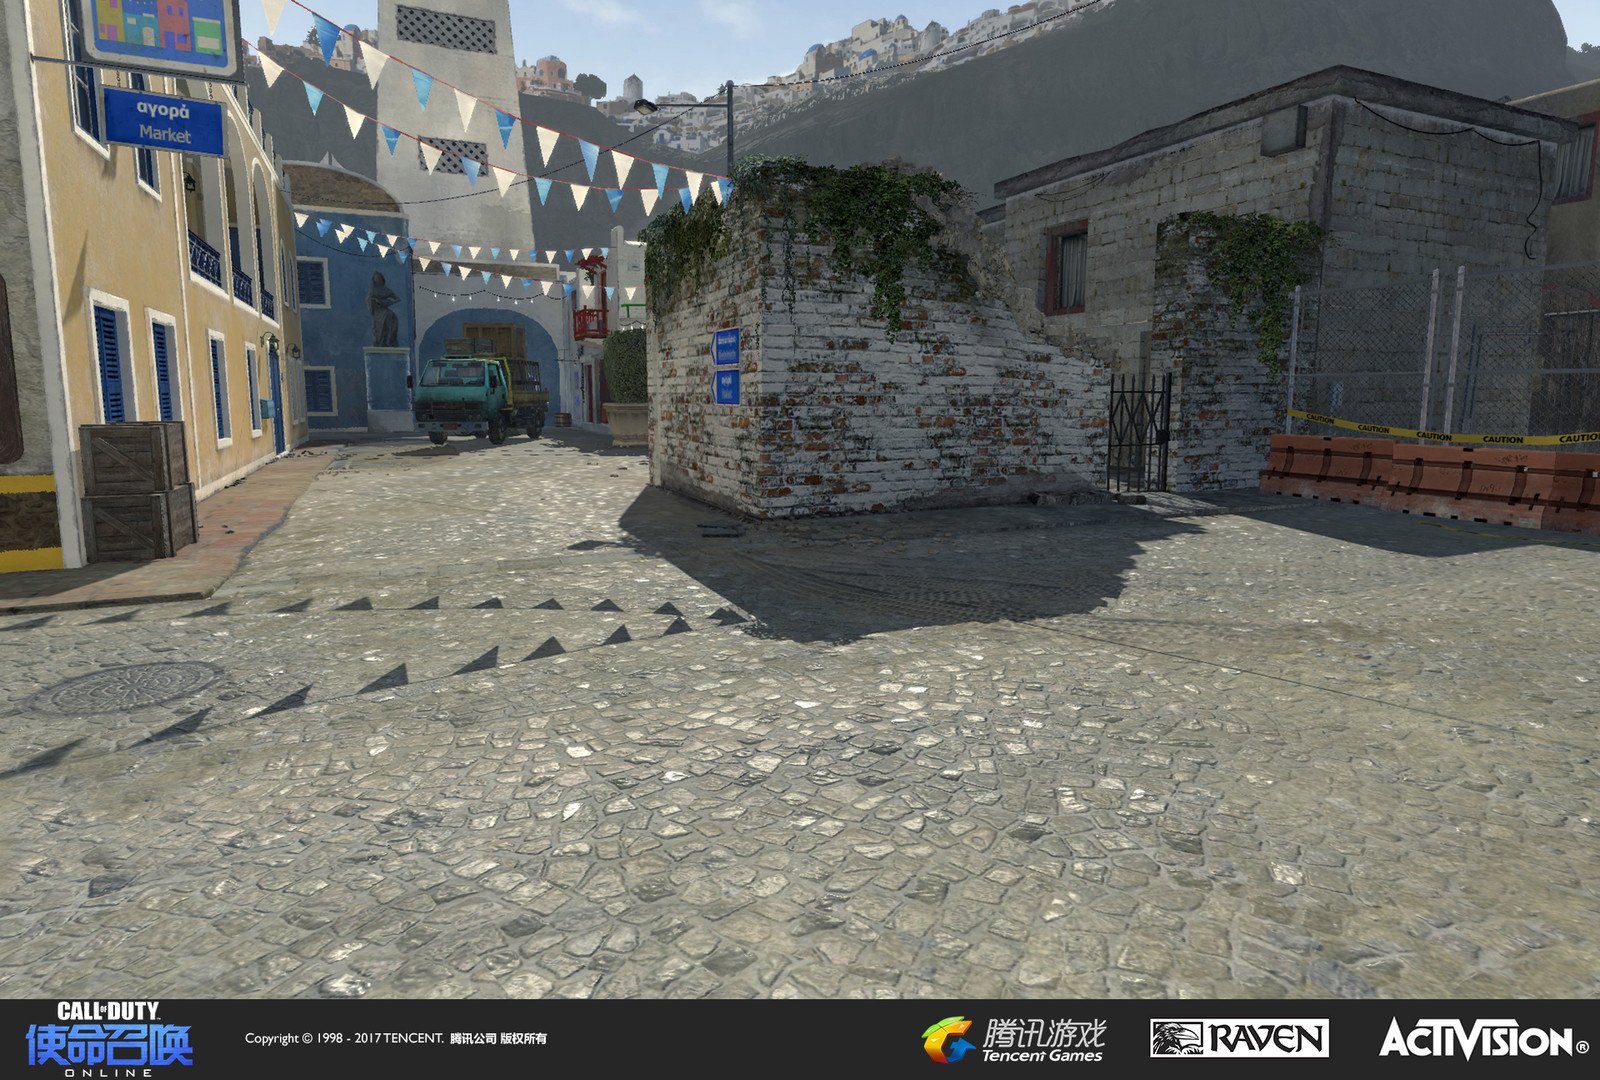 Terrain work geo and materials. Some of these building structures were built by our Shanghai environment artists.